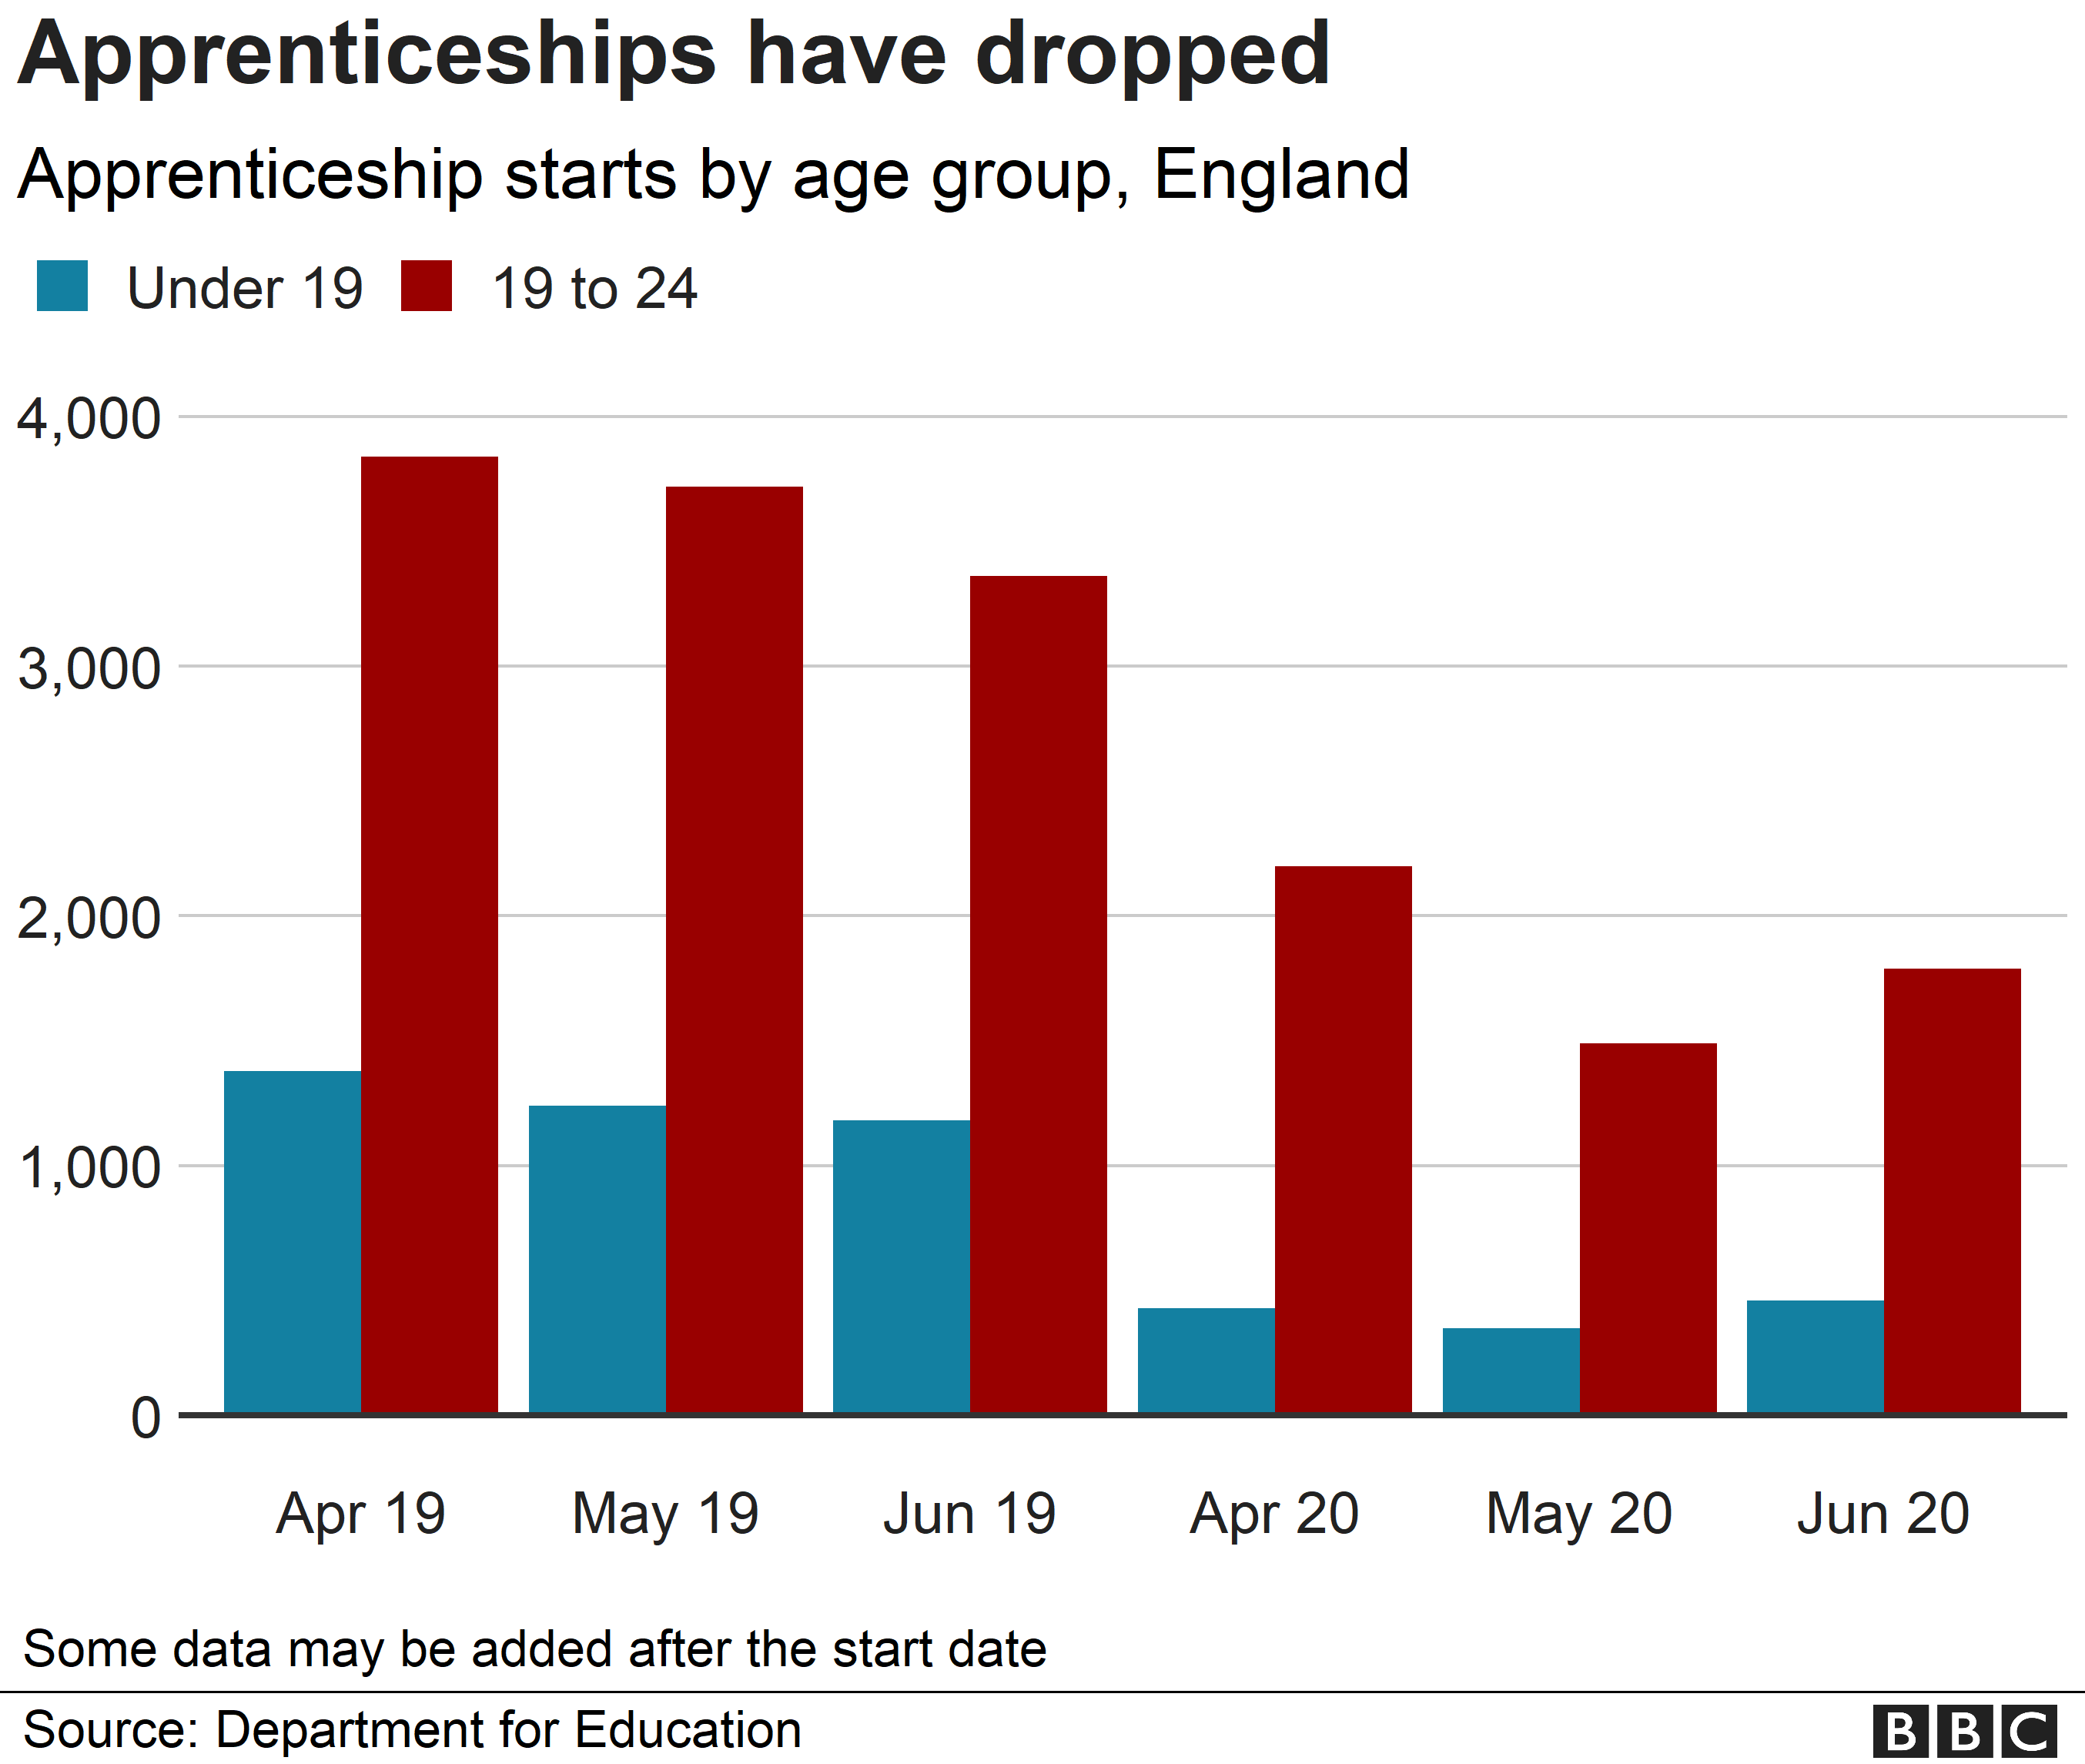 Chart showing monthly apprenticeship starts